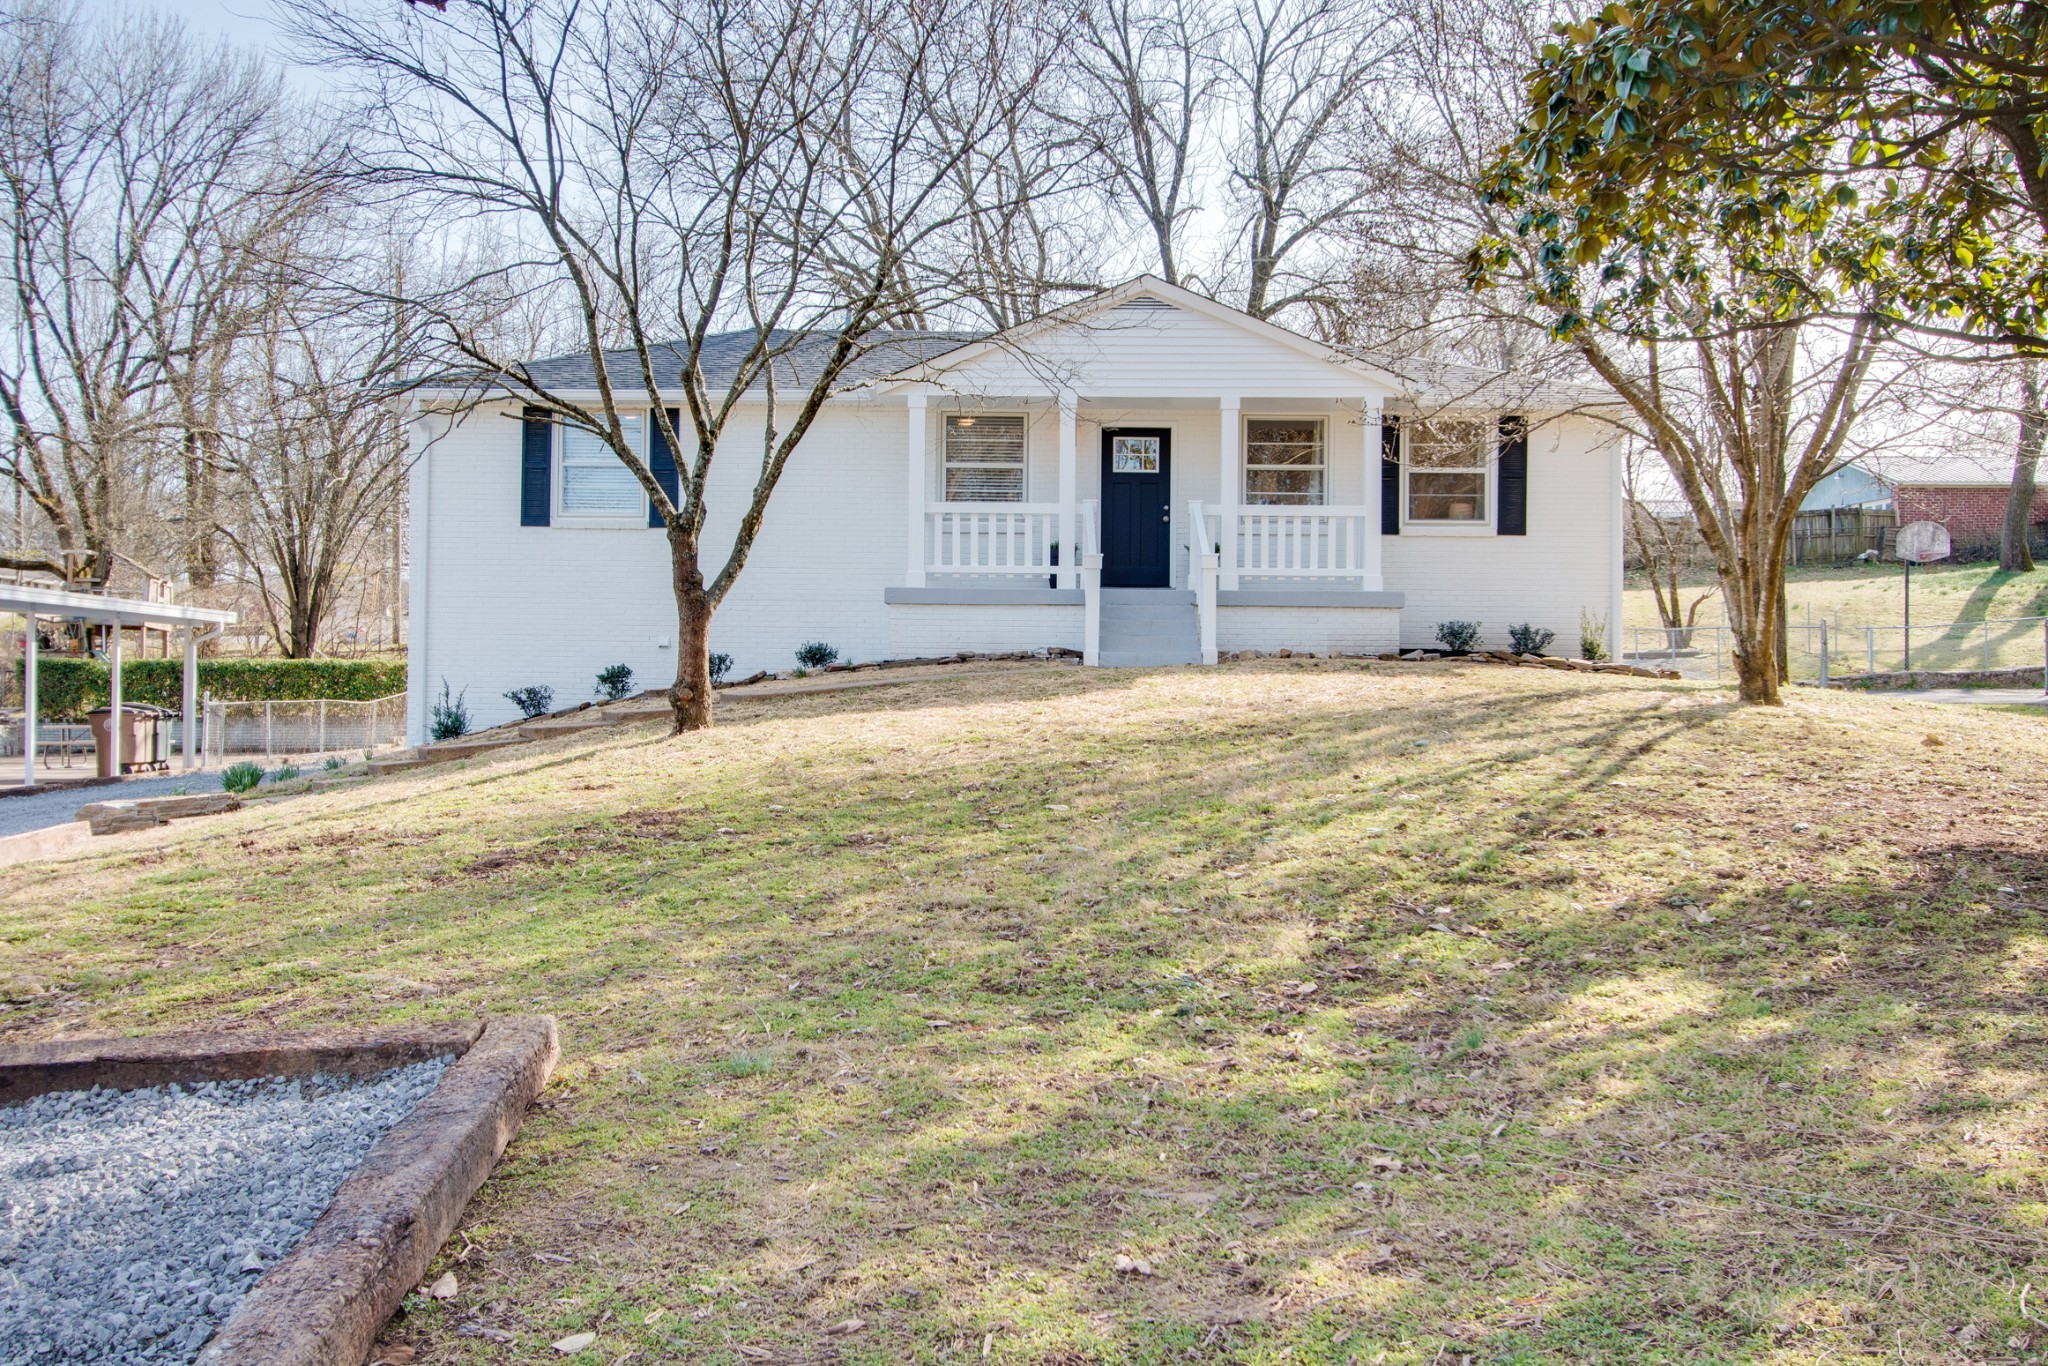 181 McCall St, Nashville, TN 37211 - Nashville, TN real estate listing